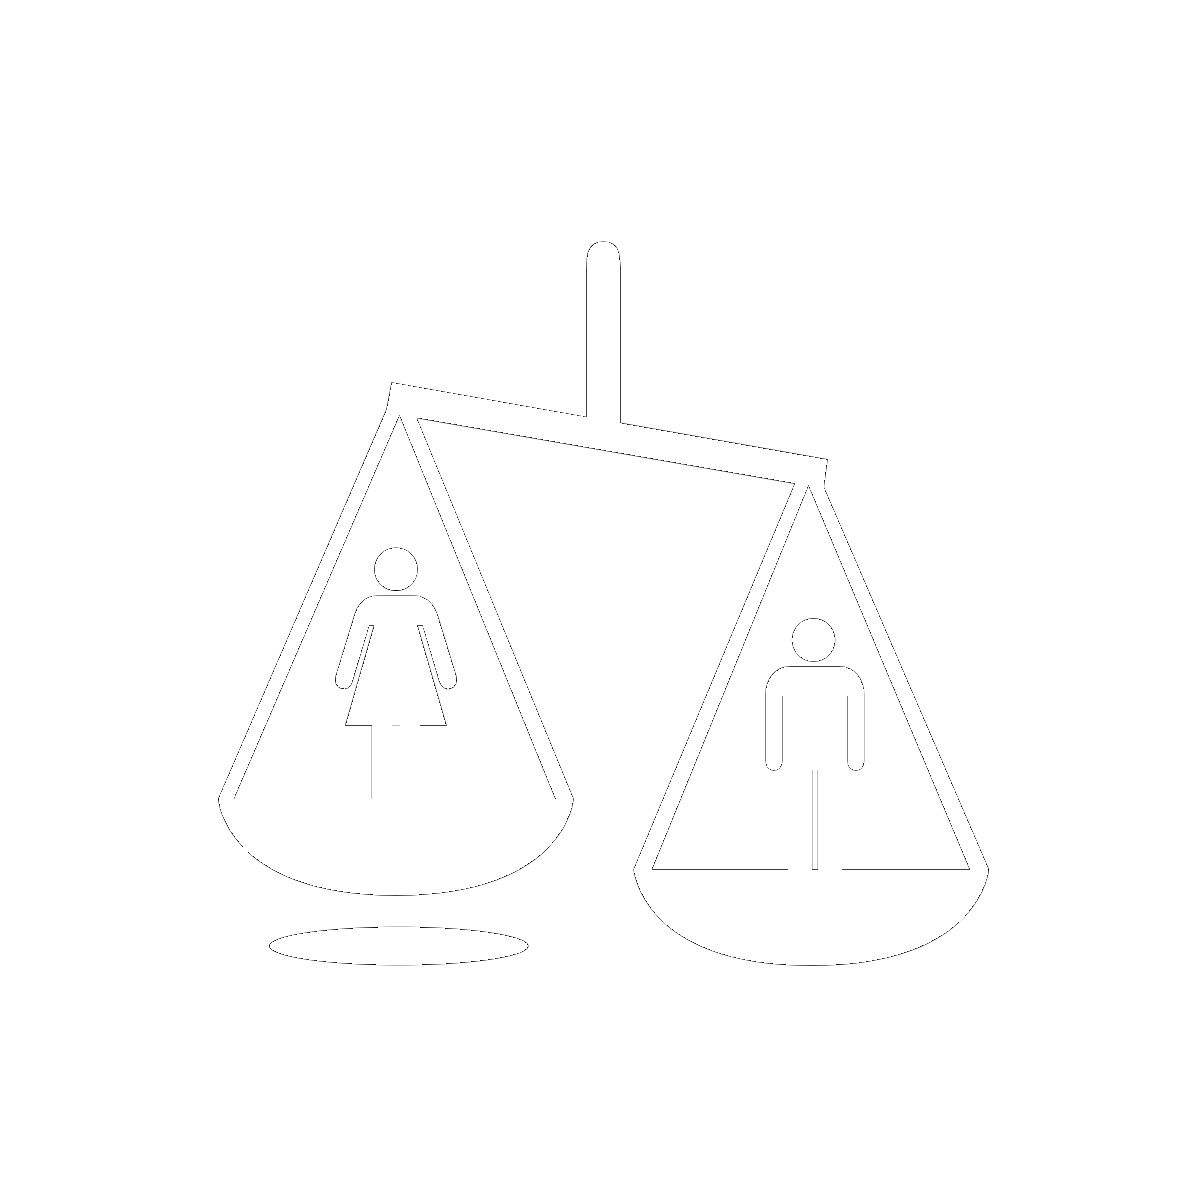 Theme Sexism and Societal Expectations